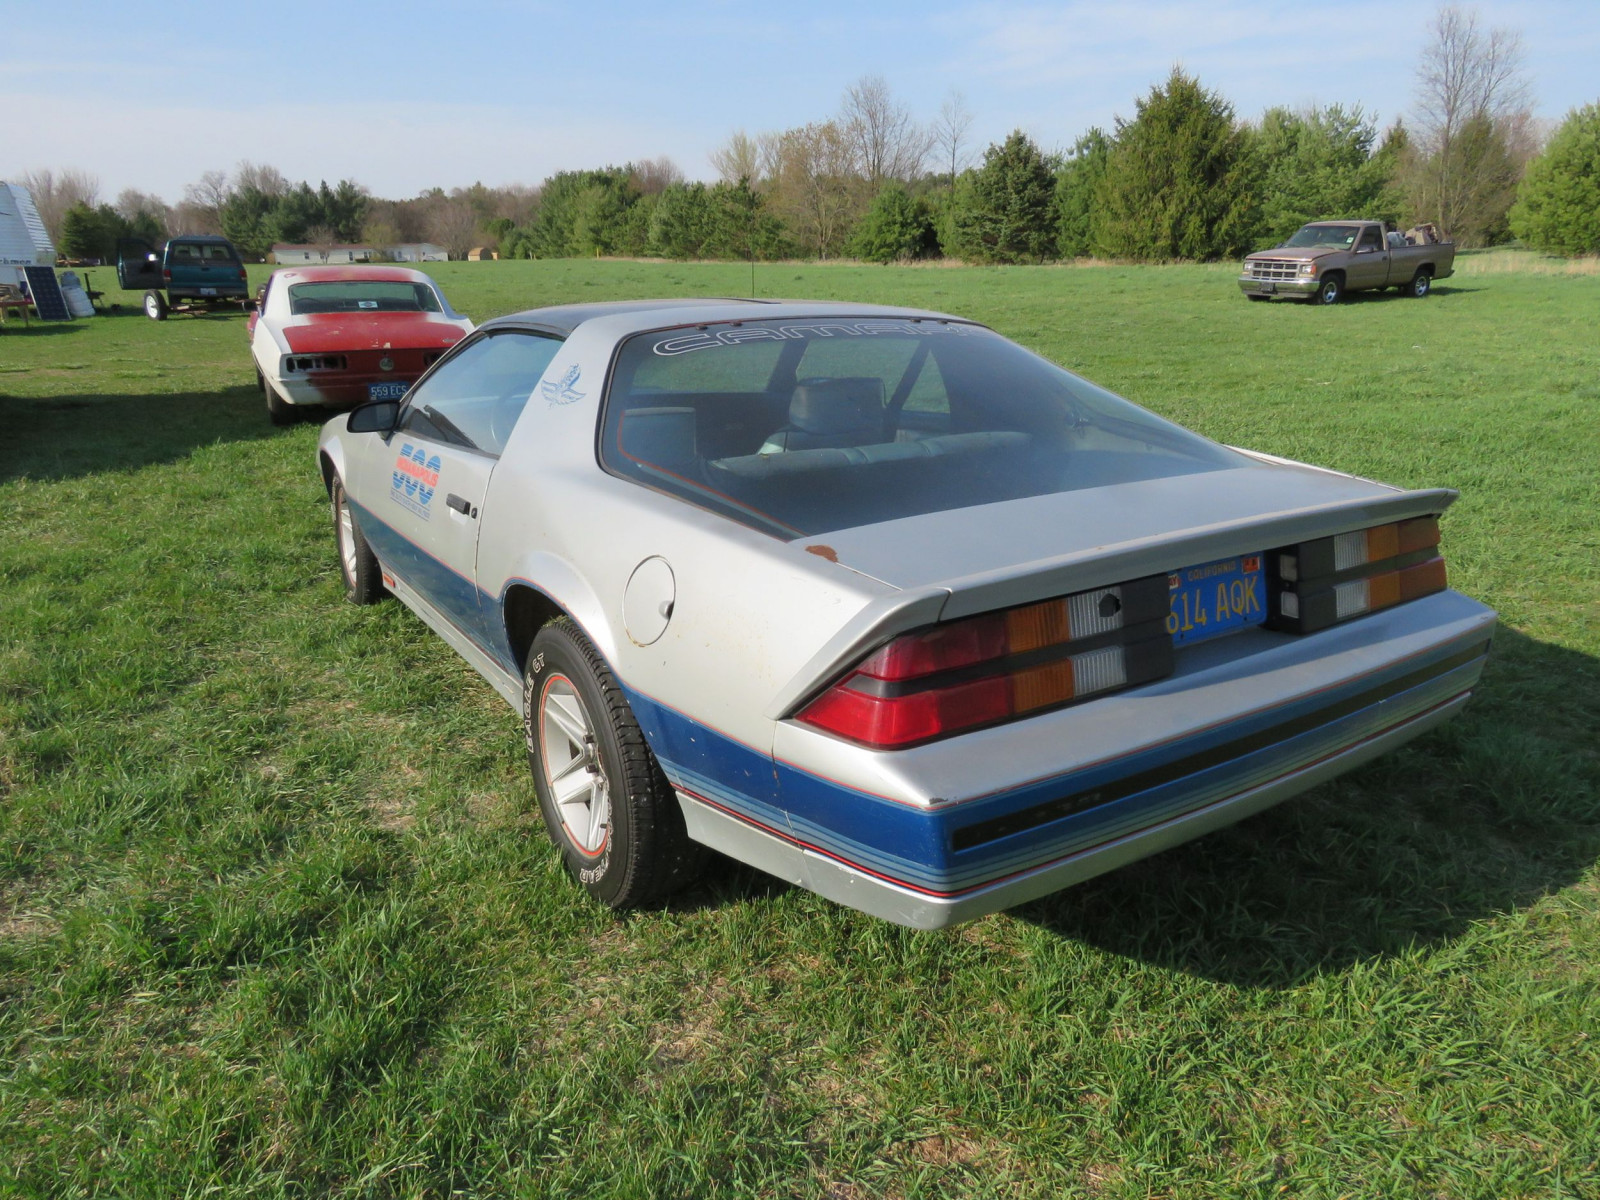 1982 Chevrolet Camaro Indianpolis 500 Edition Pace Car - Image 13